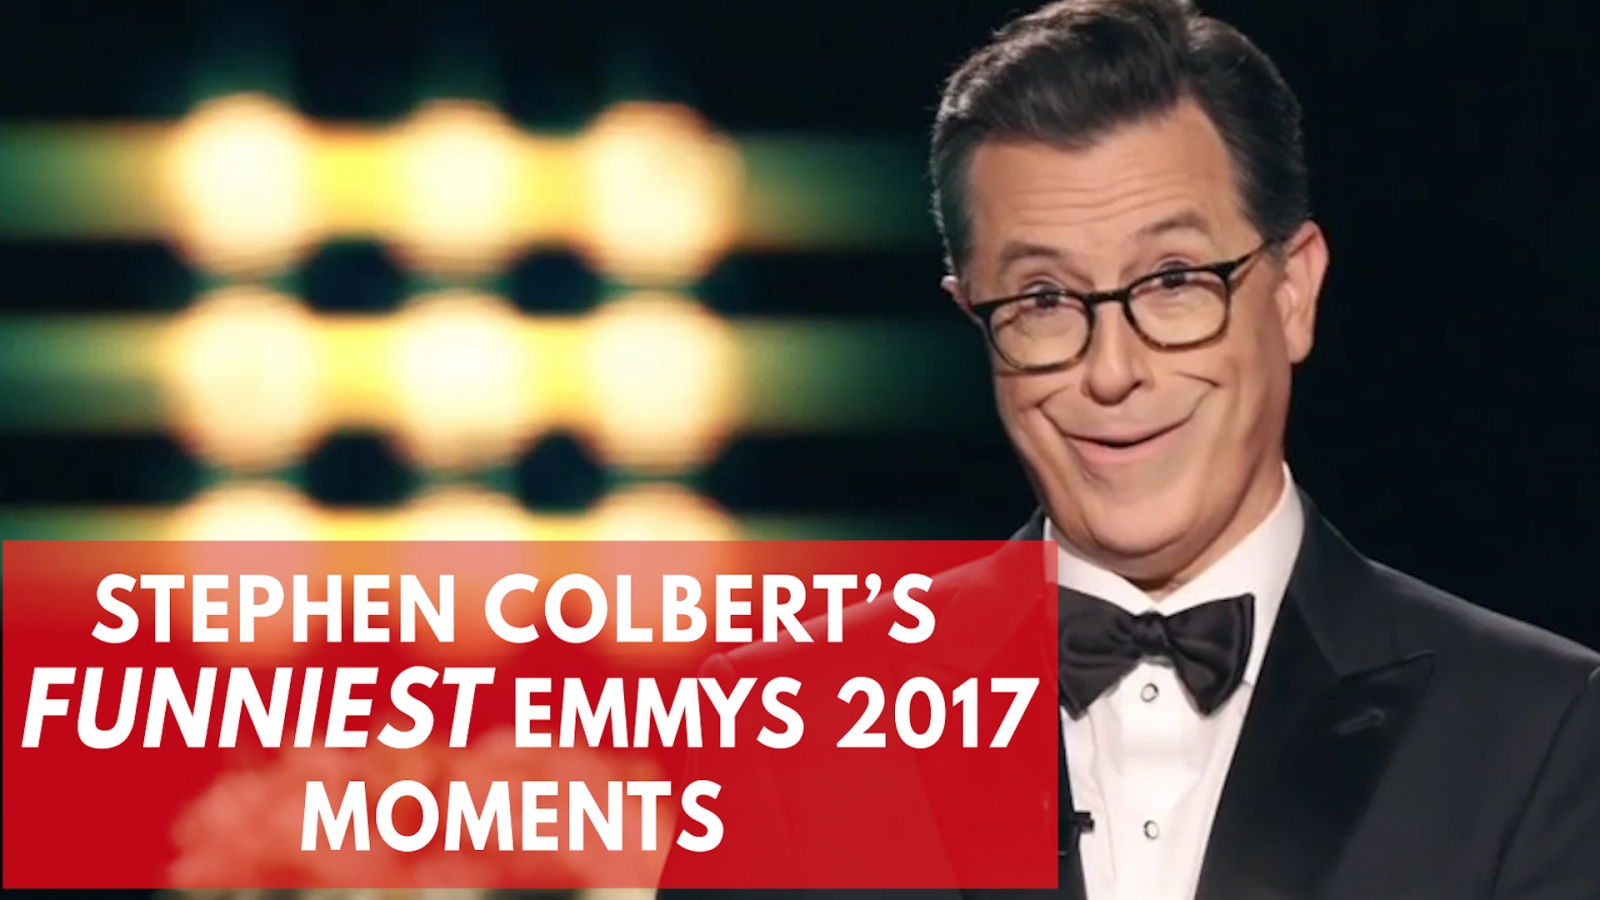 Stephen Colbert's funniest moments at the 2017 Emmys